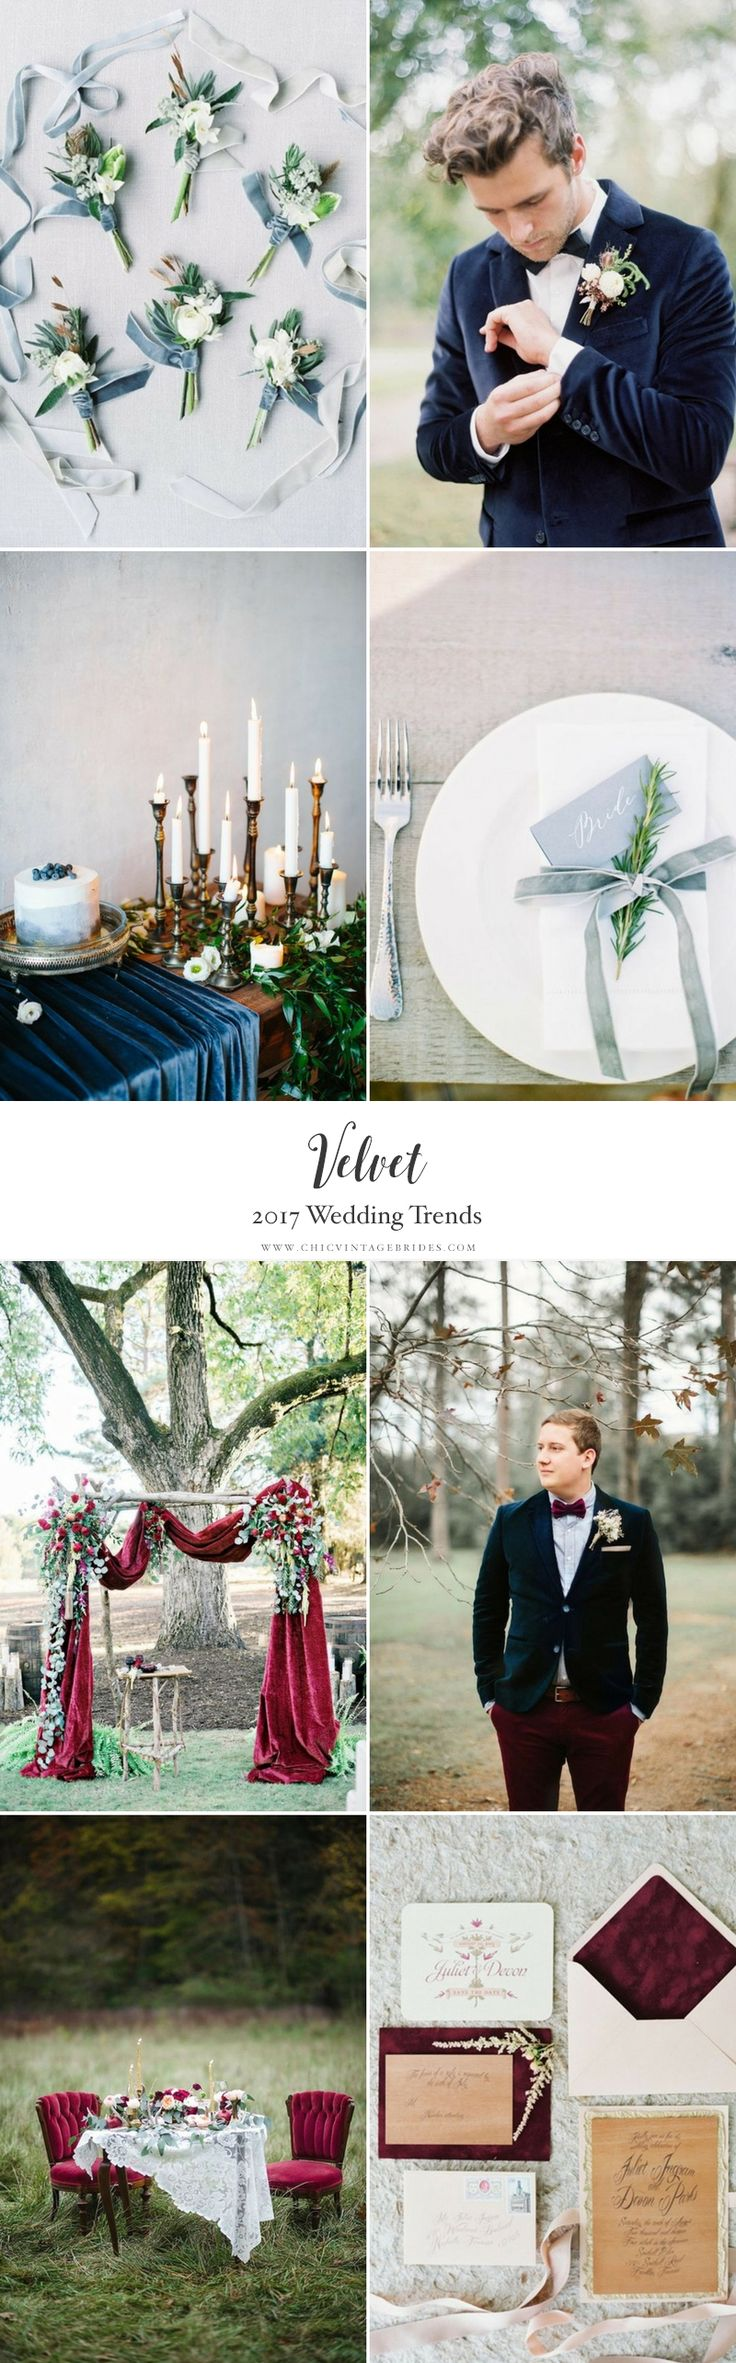 2017 Wedding Trends - Velvet